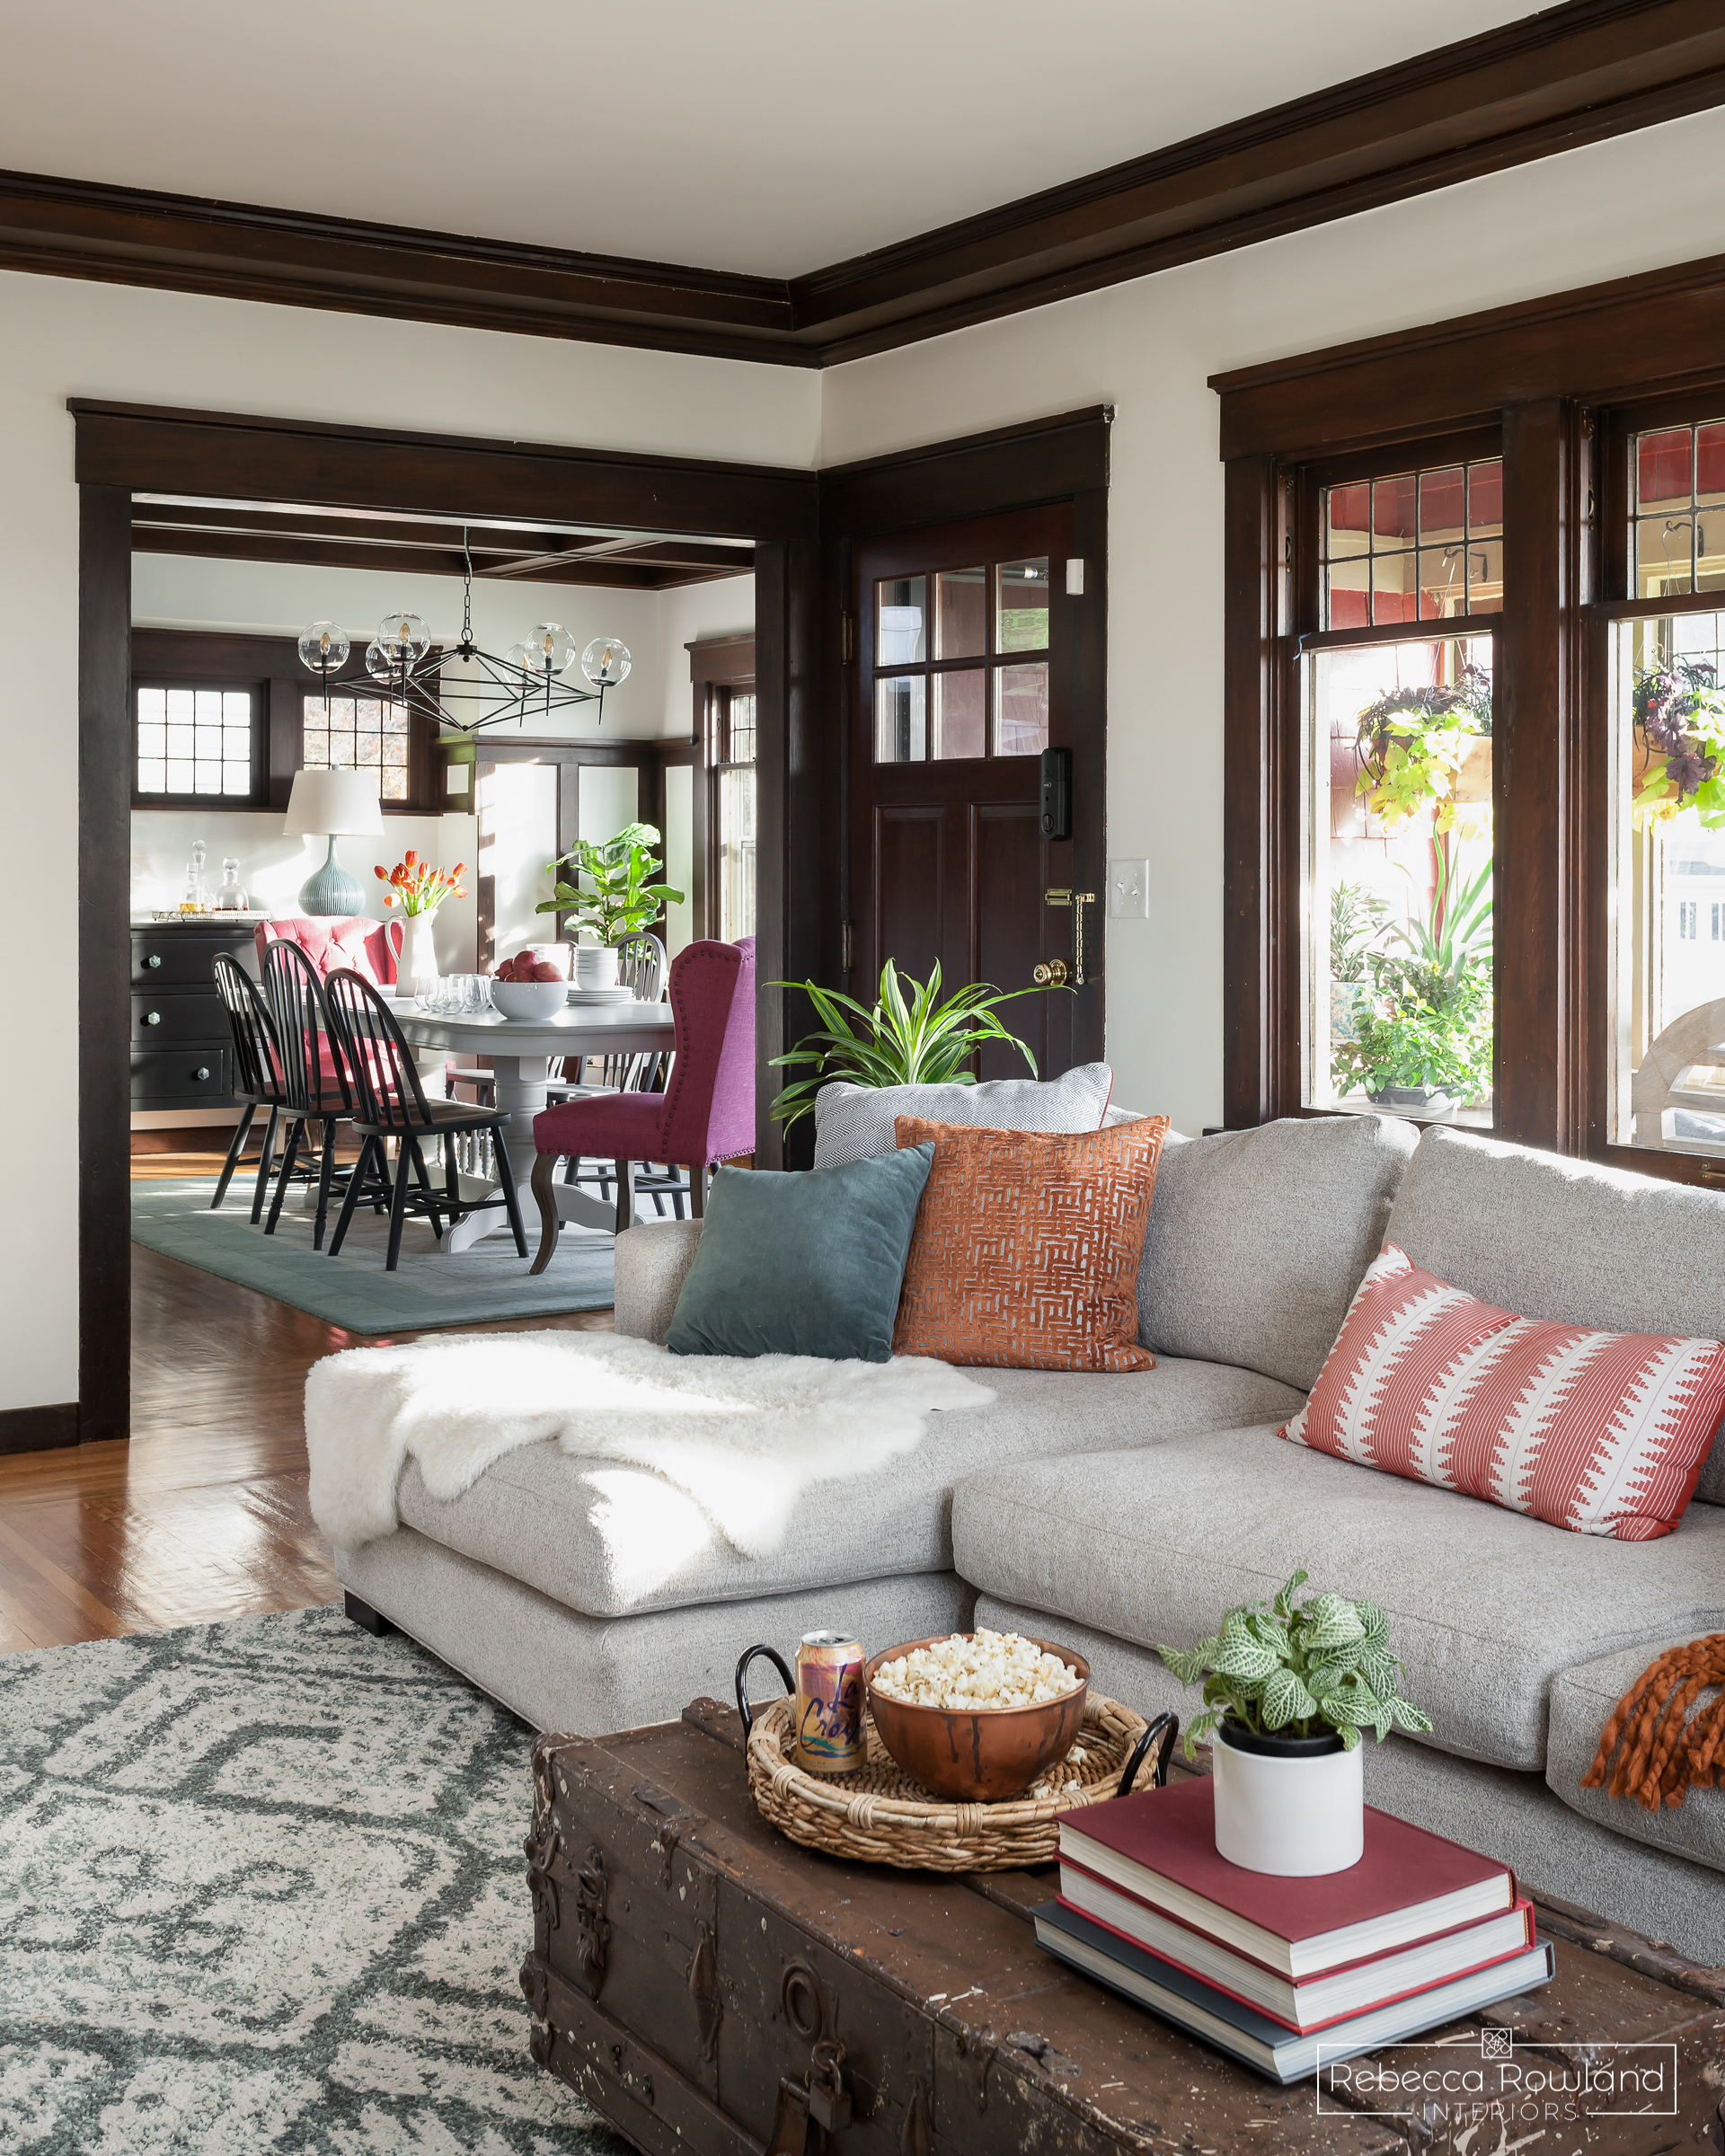 The Roosevelt Craftsman Living Room Reveal. Design by Rebecca Rowland Interiors. Photograph by Julie Mannell. Peekaboo view of the dining room project.